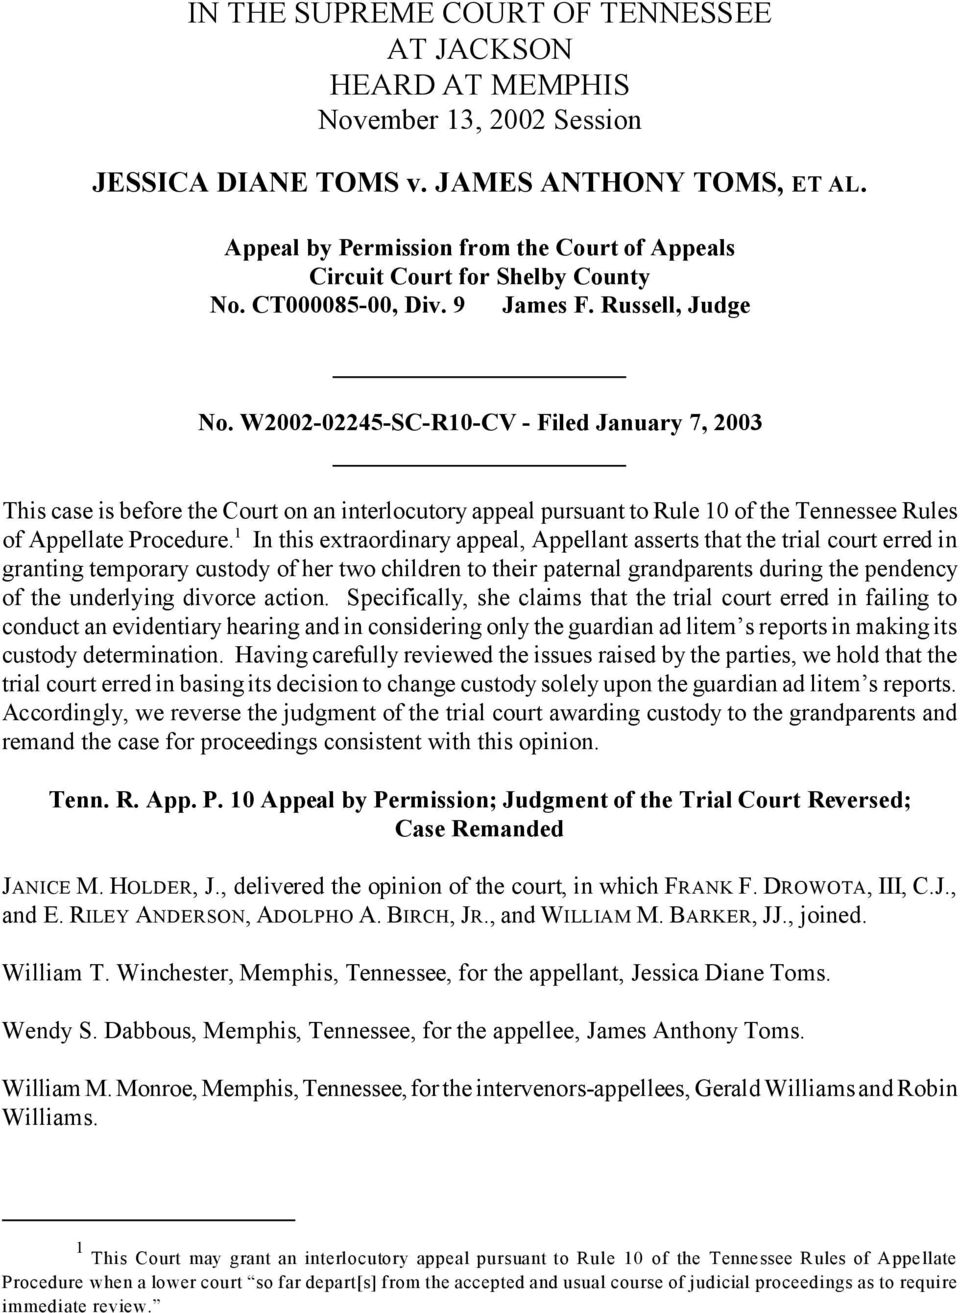 W2002-02245-SC-R10-CV - Filed January 7, 2003 This case is before the Court on an interlocutory appeal pursuant to Rule 10 of the Tennessee Rules of Appellate Procedure.